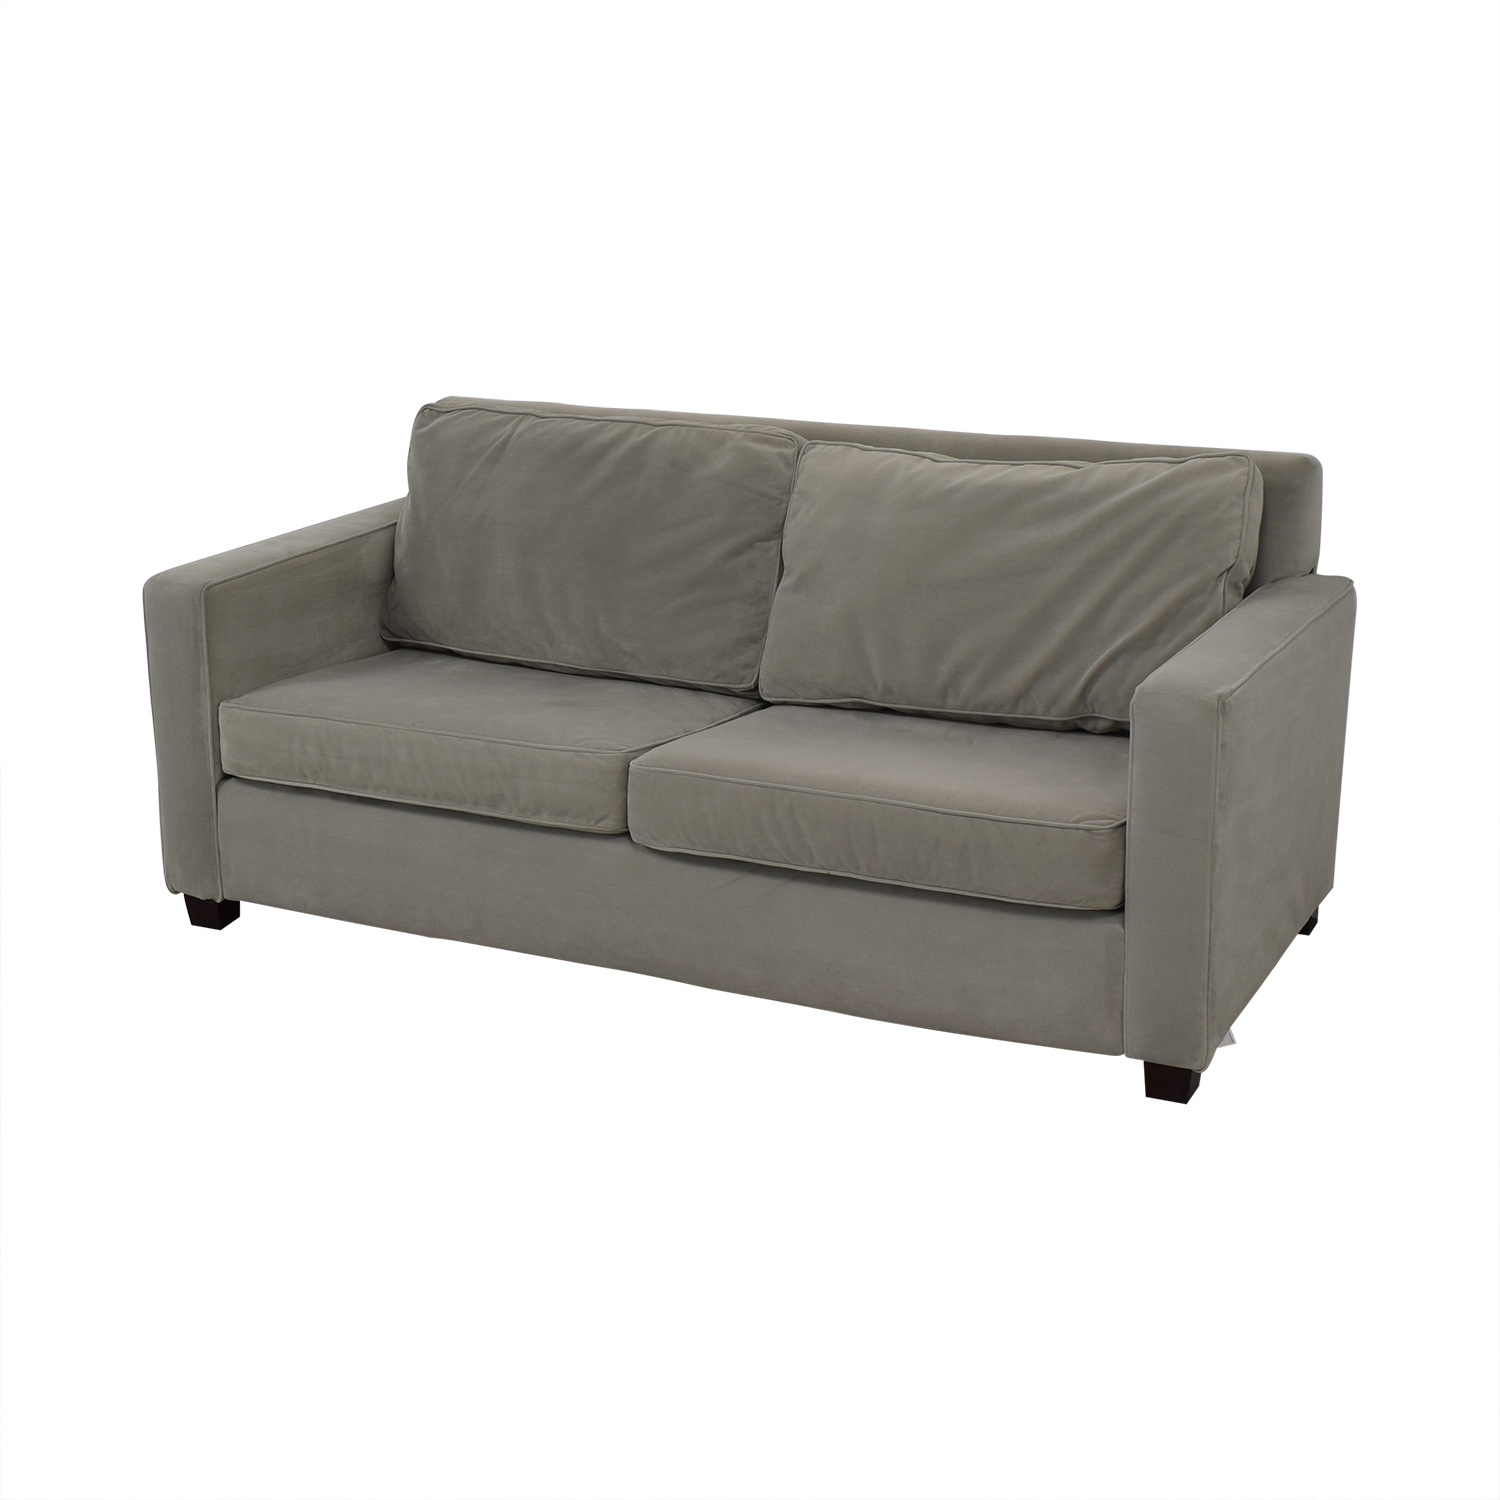 West Elm West Elm Henry Sofa nyc